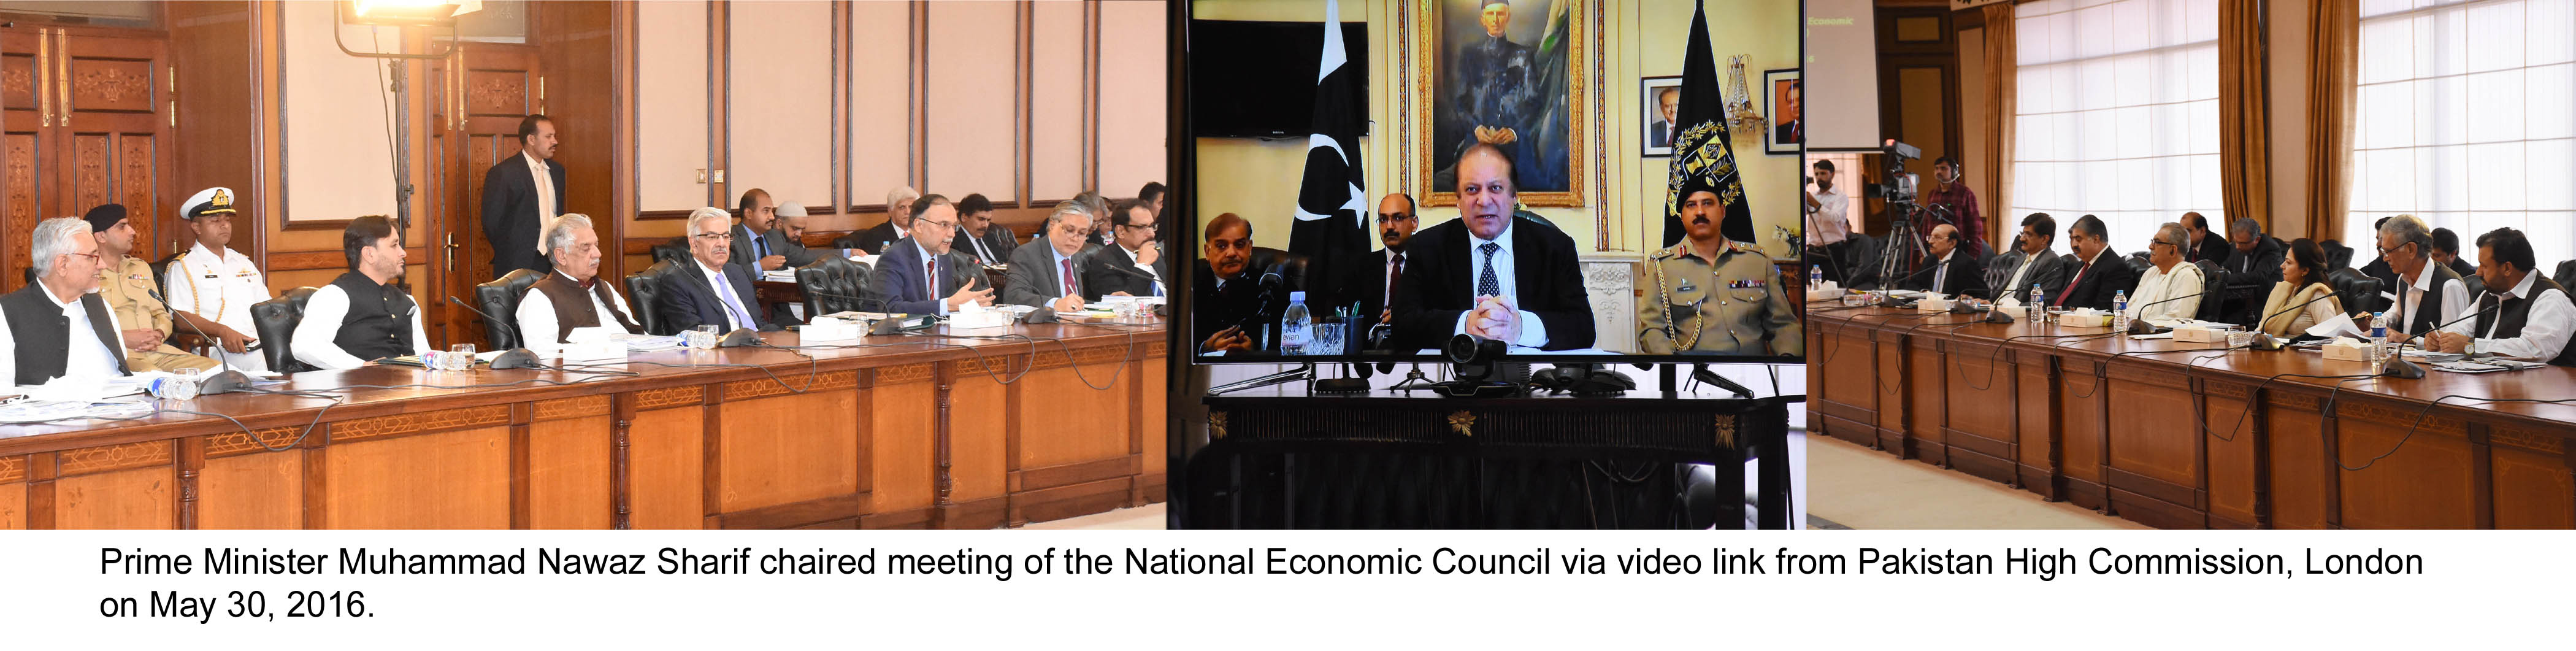 Energy and Tourism projects approved for Gilgit-Baltistan during National Economic Council meeting